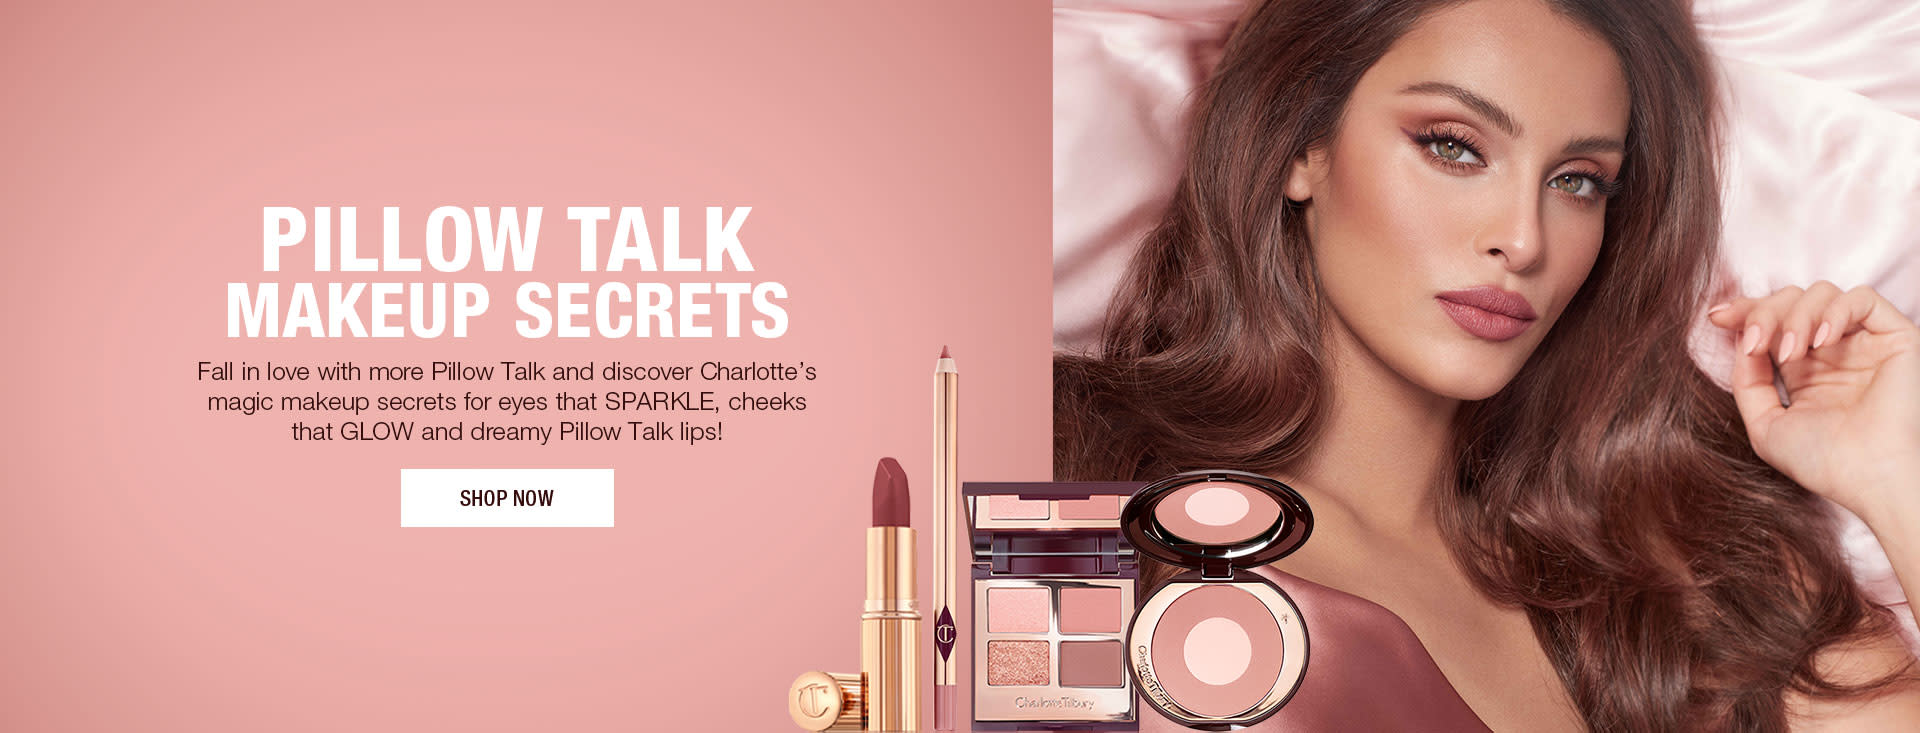 Pillow Talk Makeup Secrets